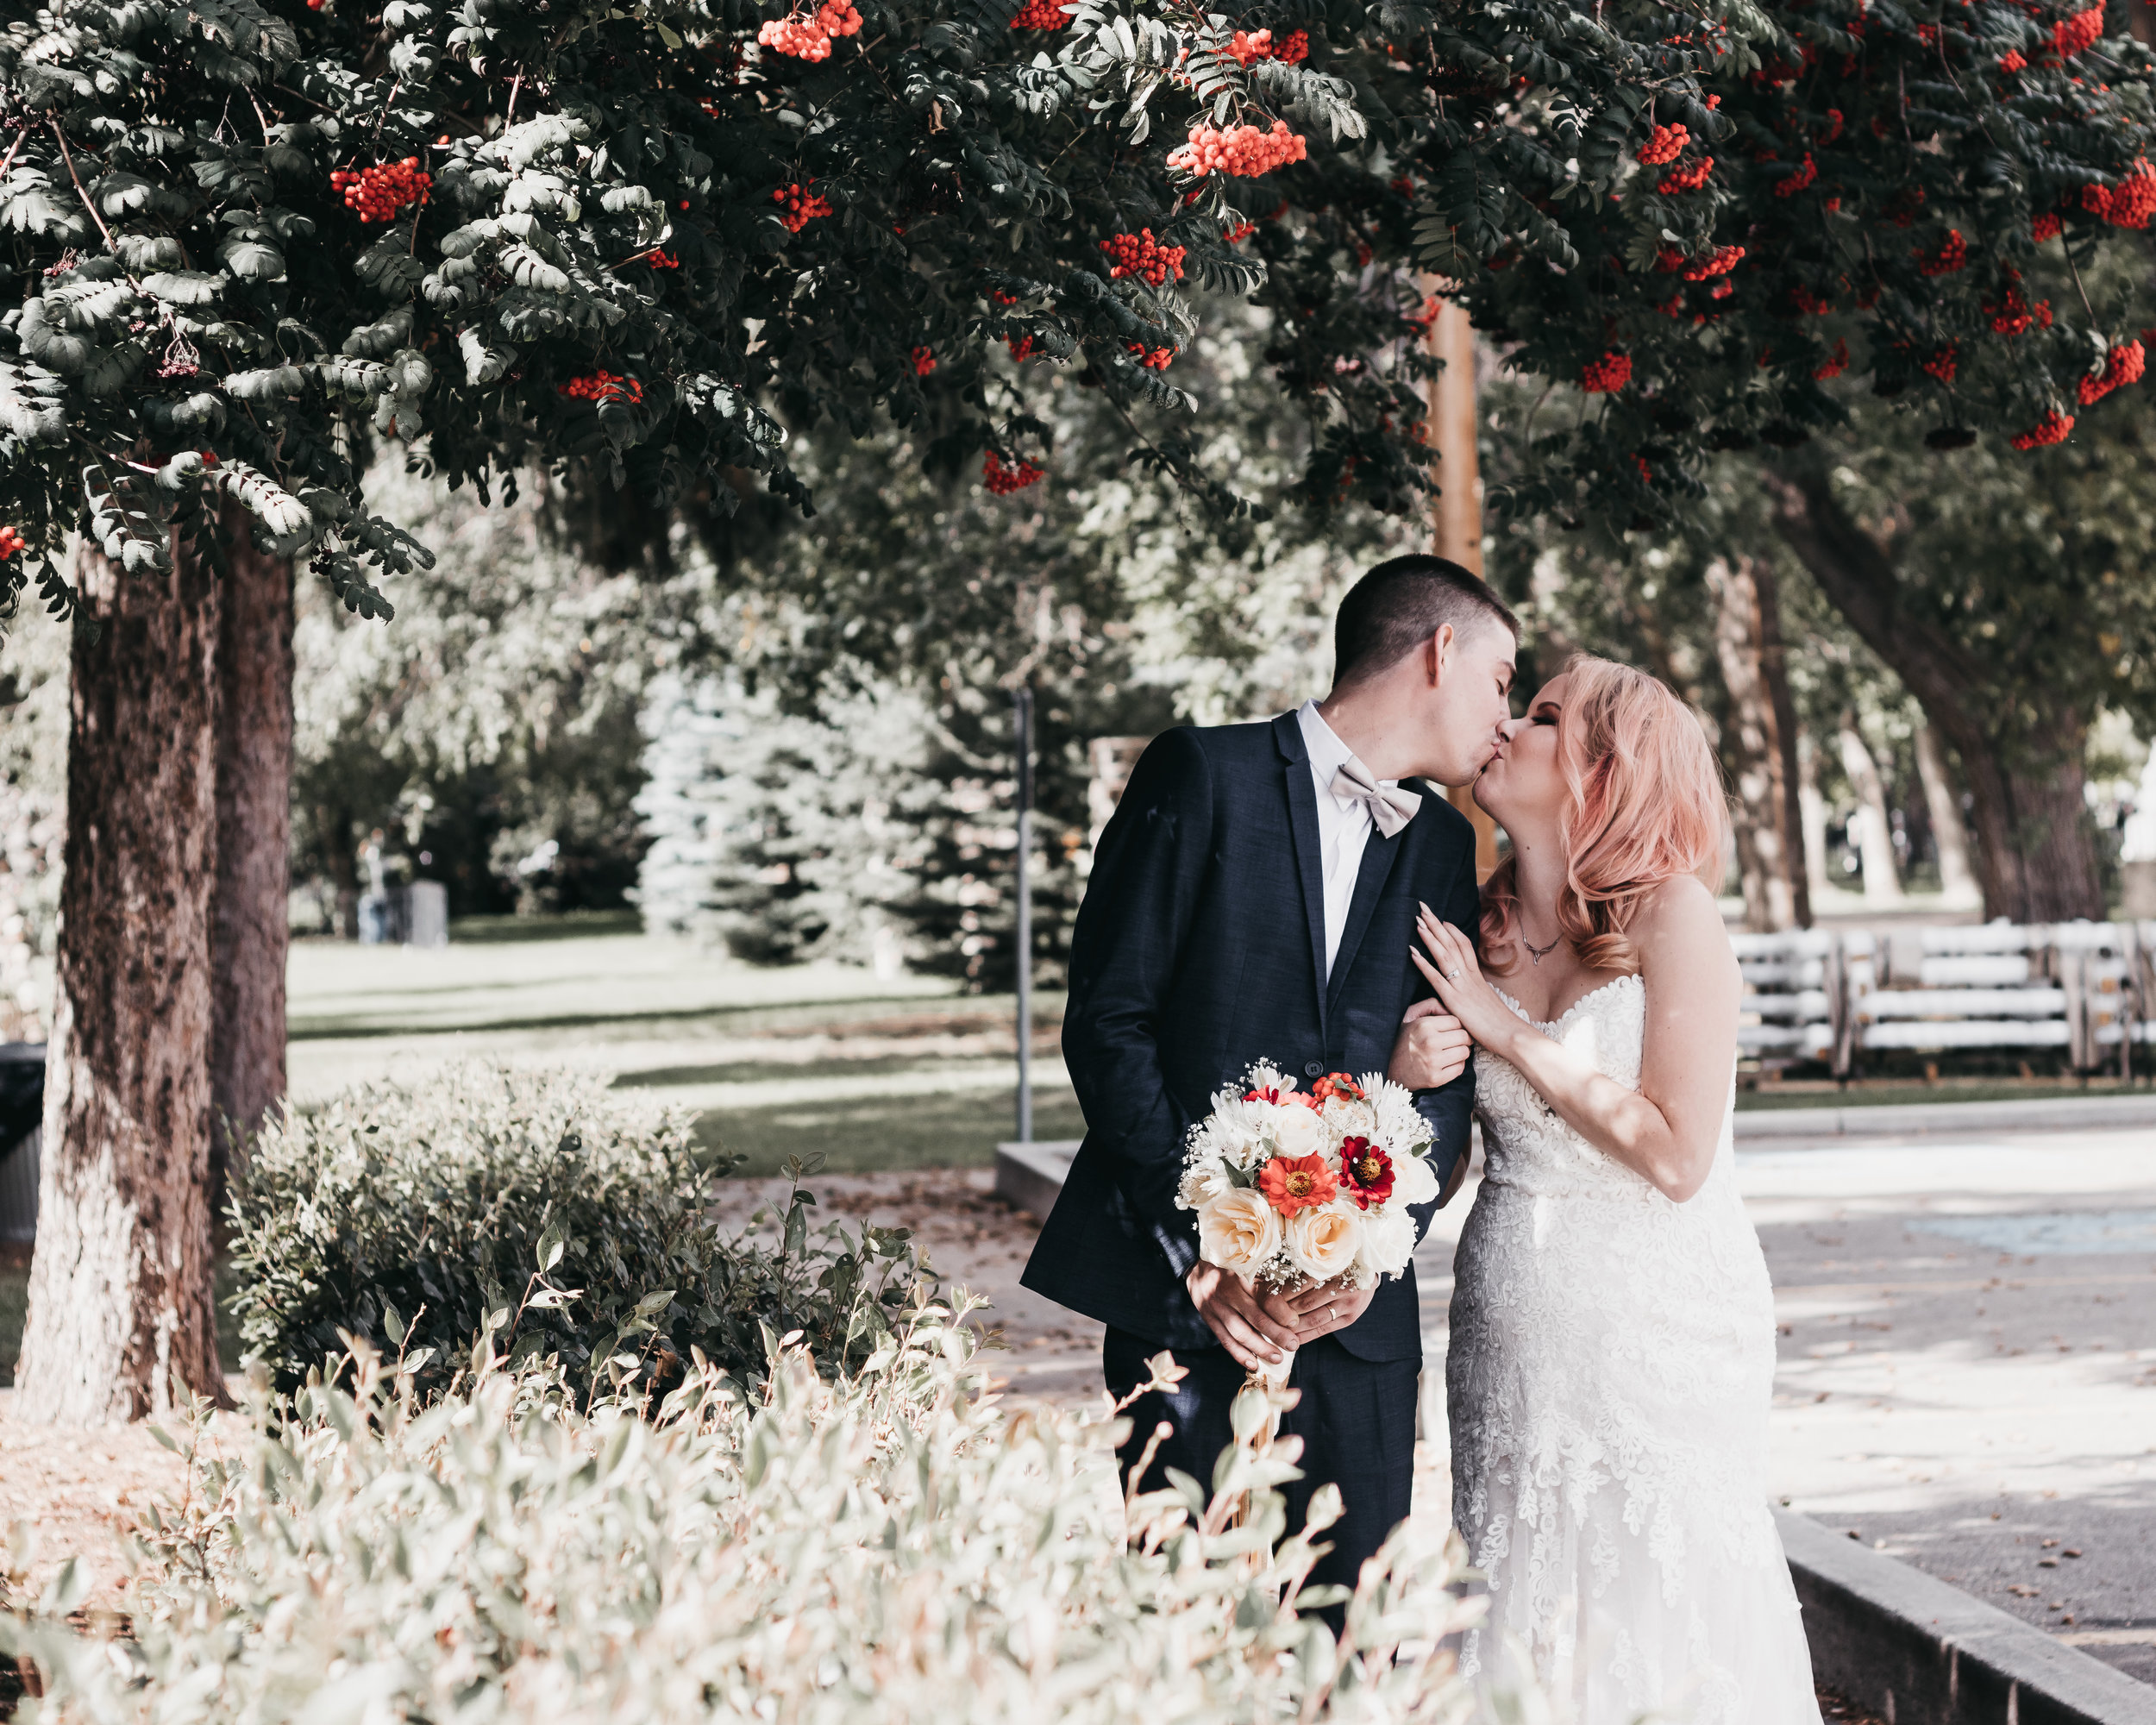 Jeremy & April | St. Albert Wedding | Edmonton Wedding Photographer